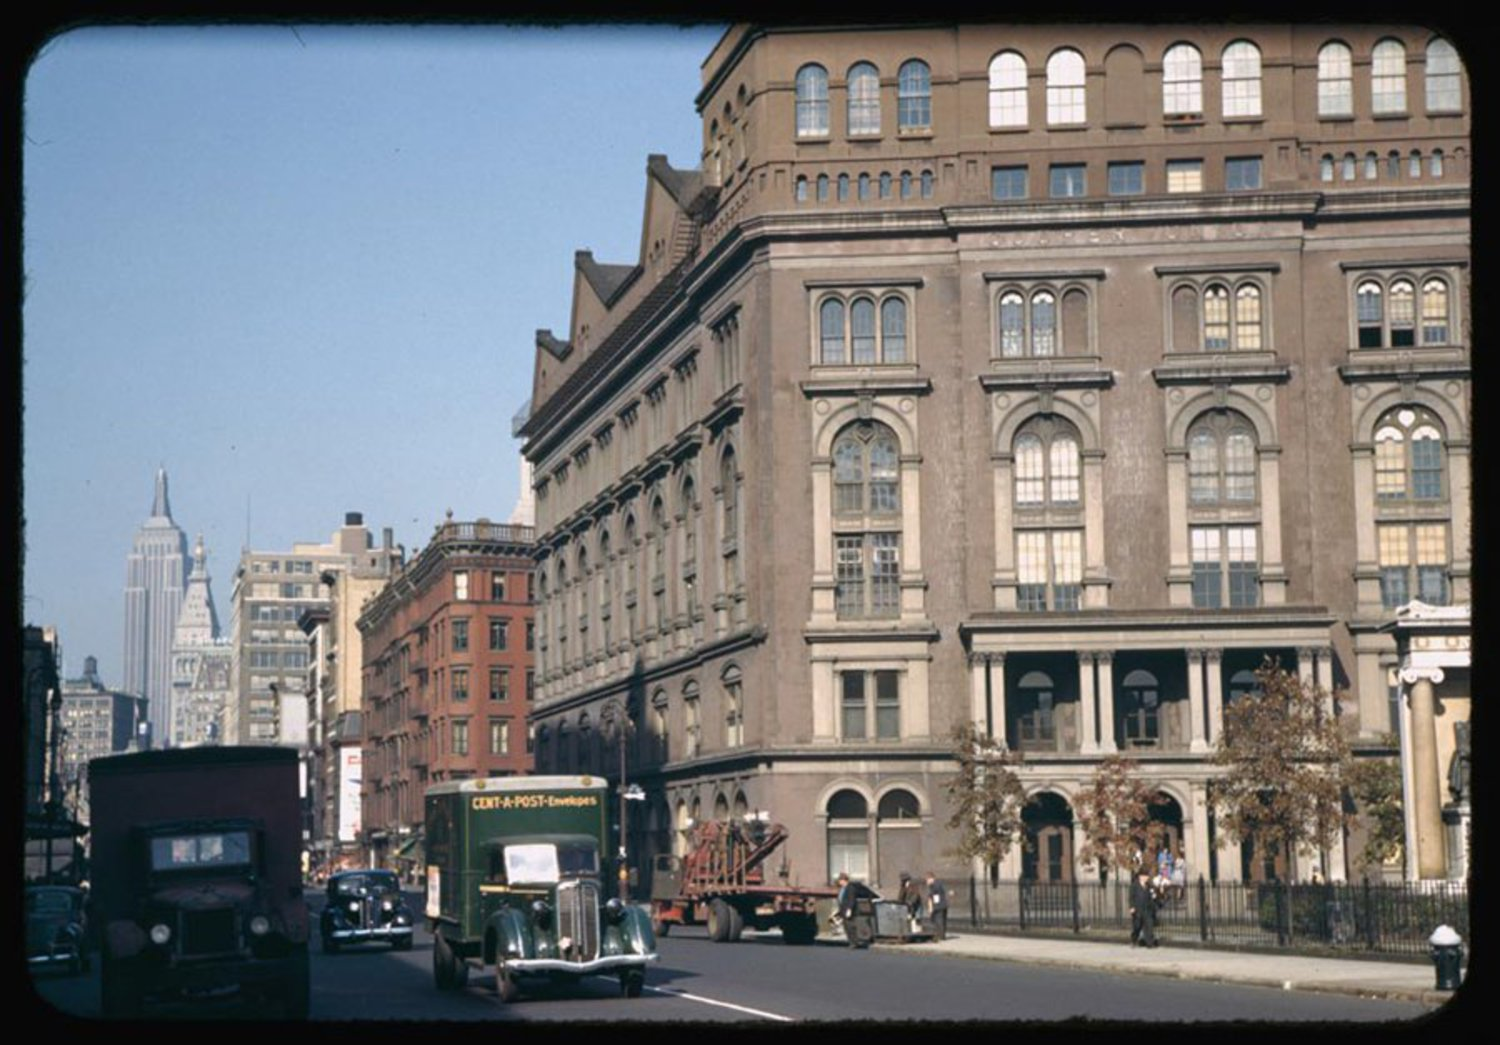 Cooper Union, pictured here on the right, opened in 1859.